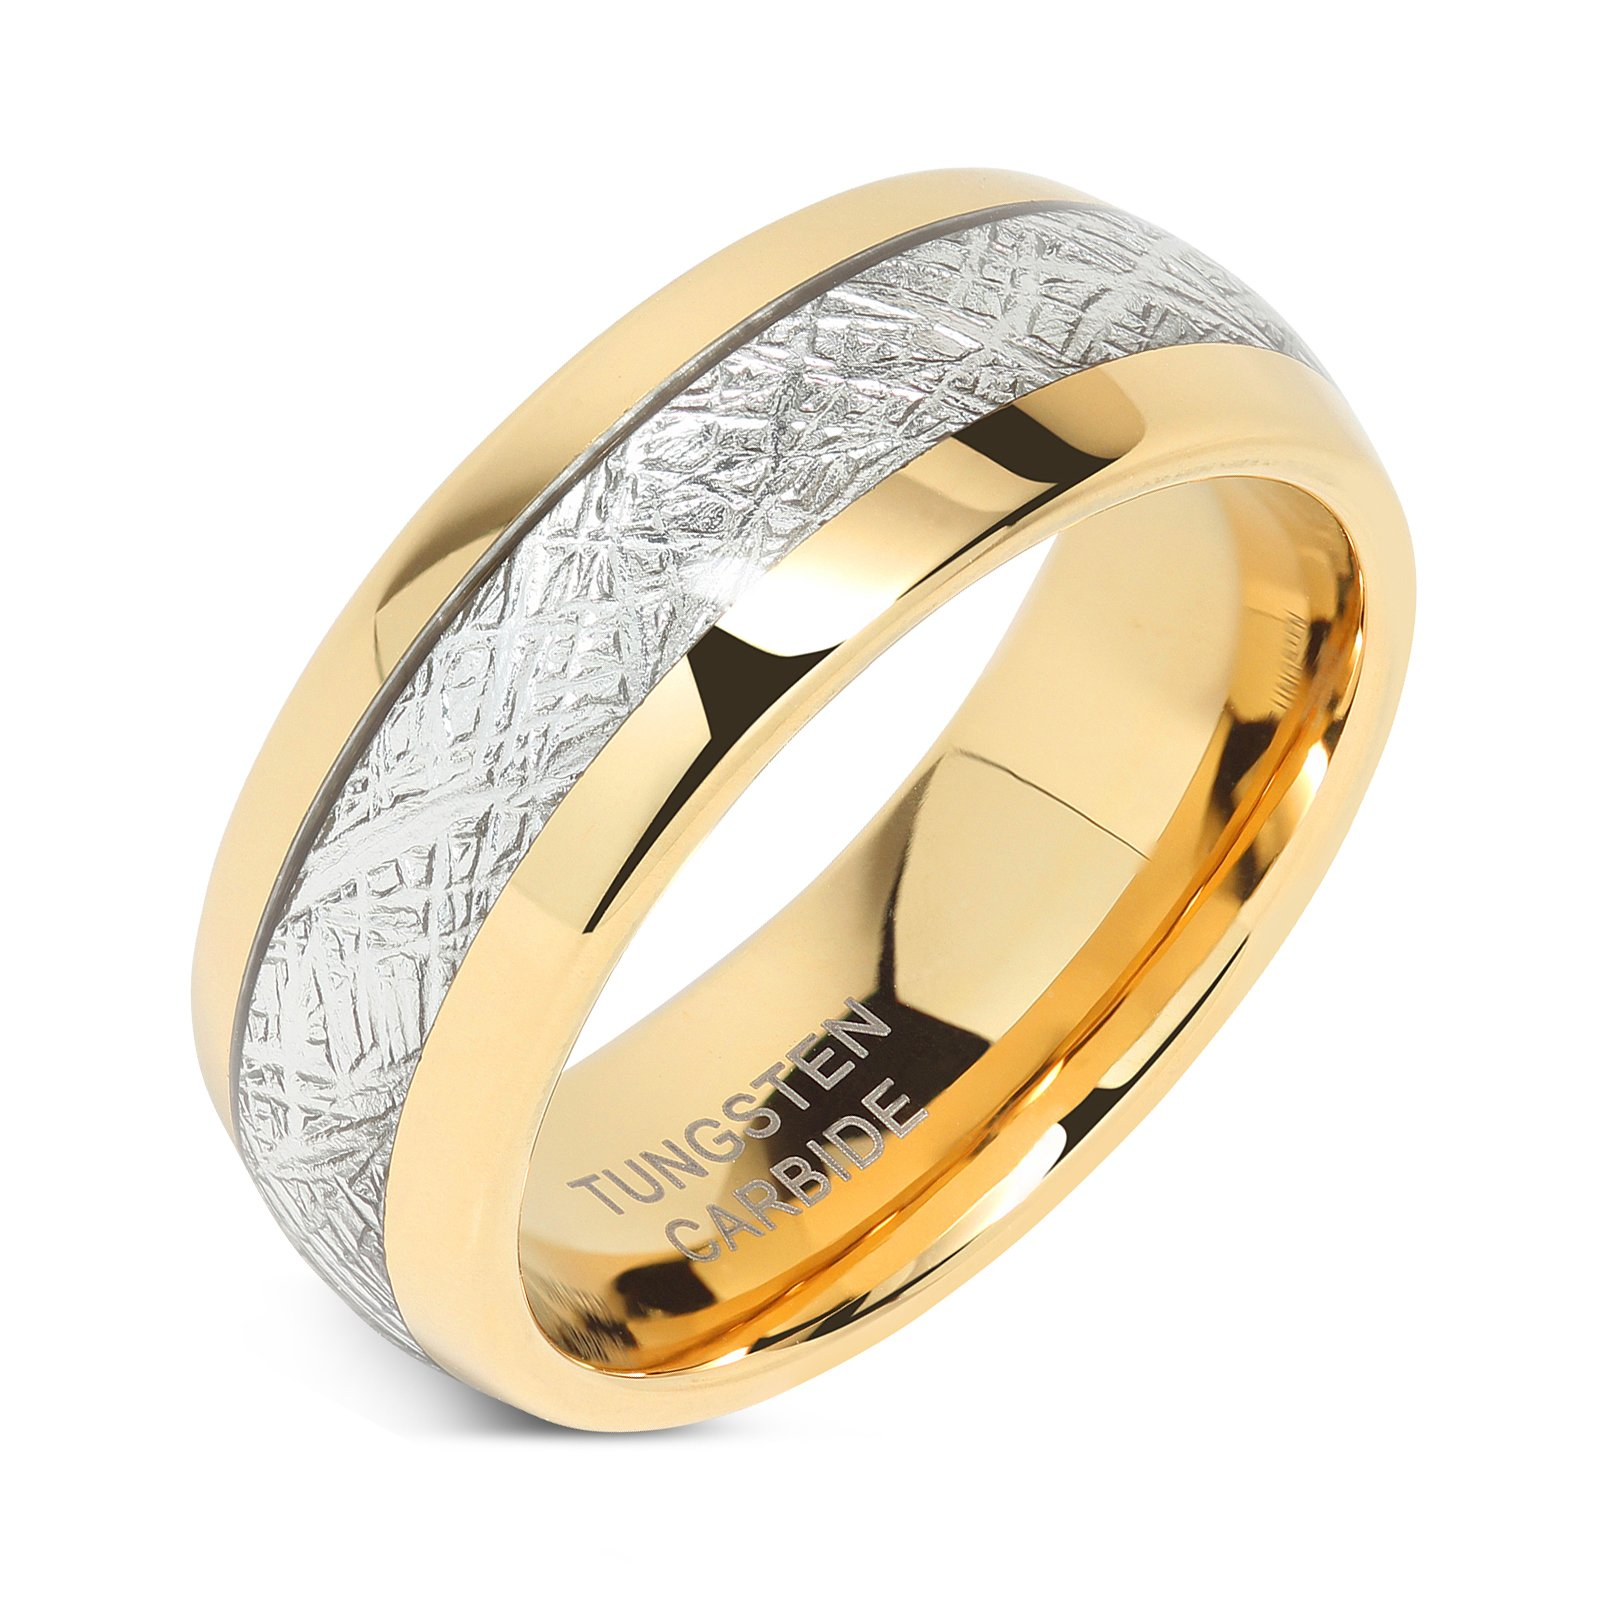 100S JEWELRY 8mm Mens Tungsten Carbide Ring Imitated Meteorite Inlay 14k Gold Plated Jewelry Wedding Band Size 5-16 (10.5)